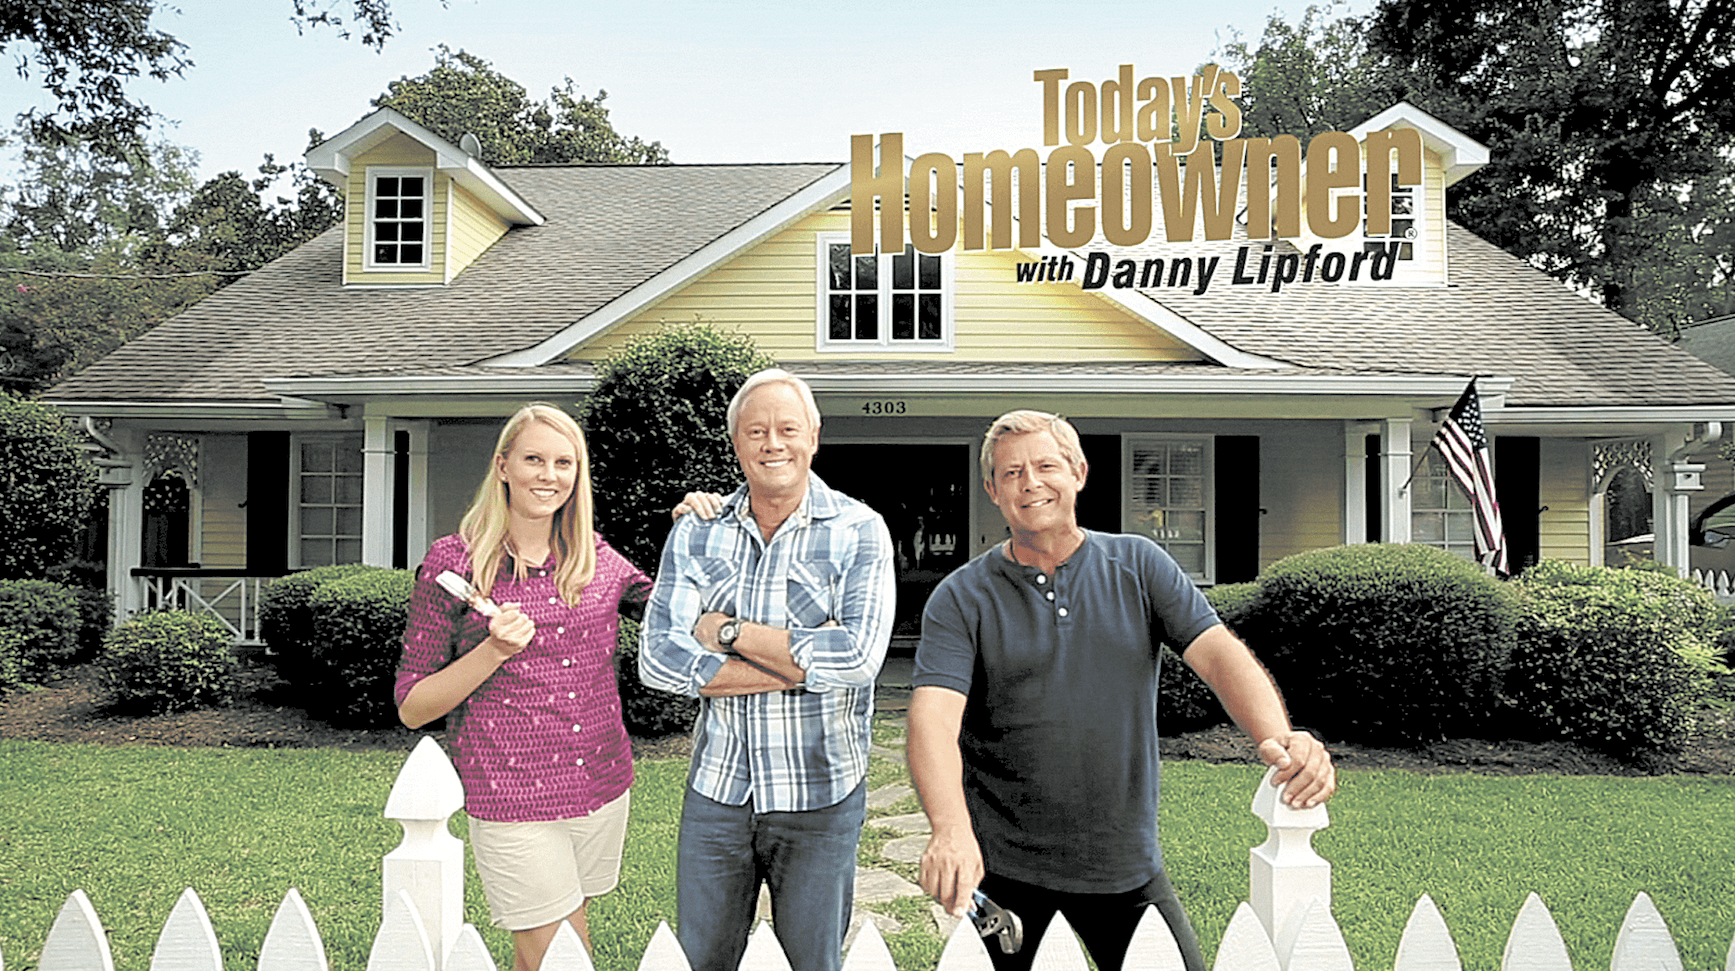 Today's Homeowner hits 1.5 million weekly viewers